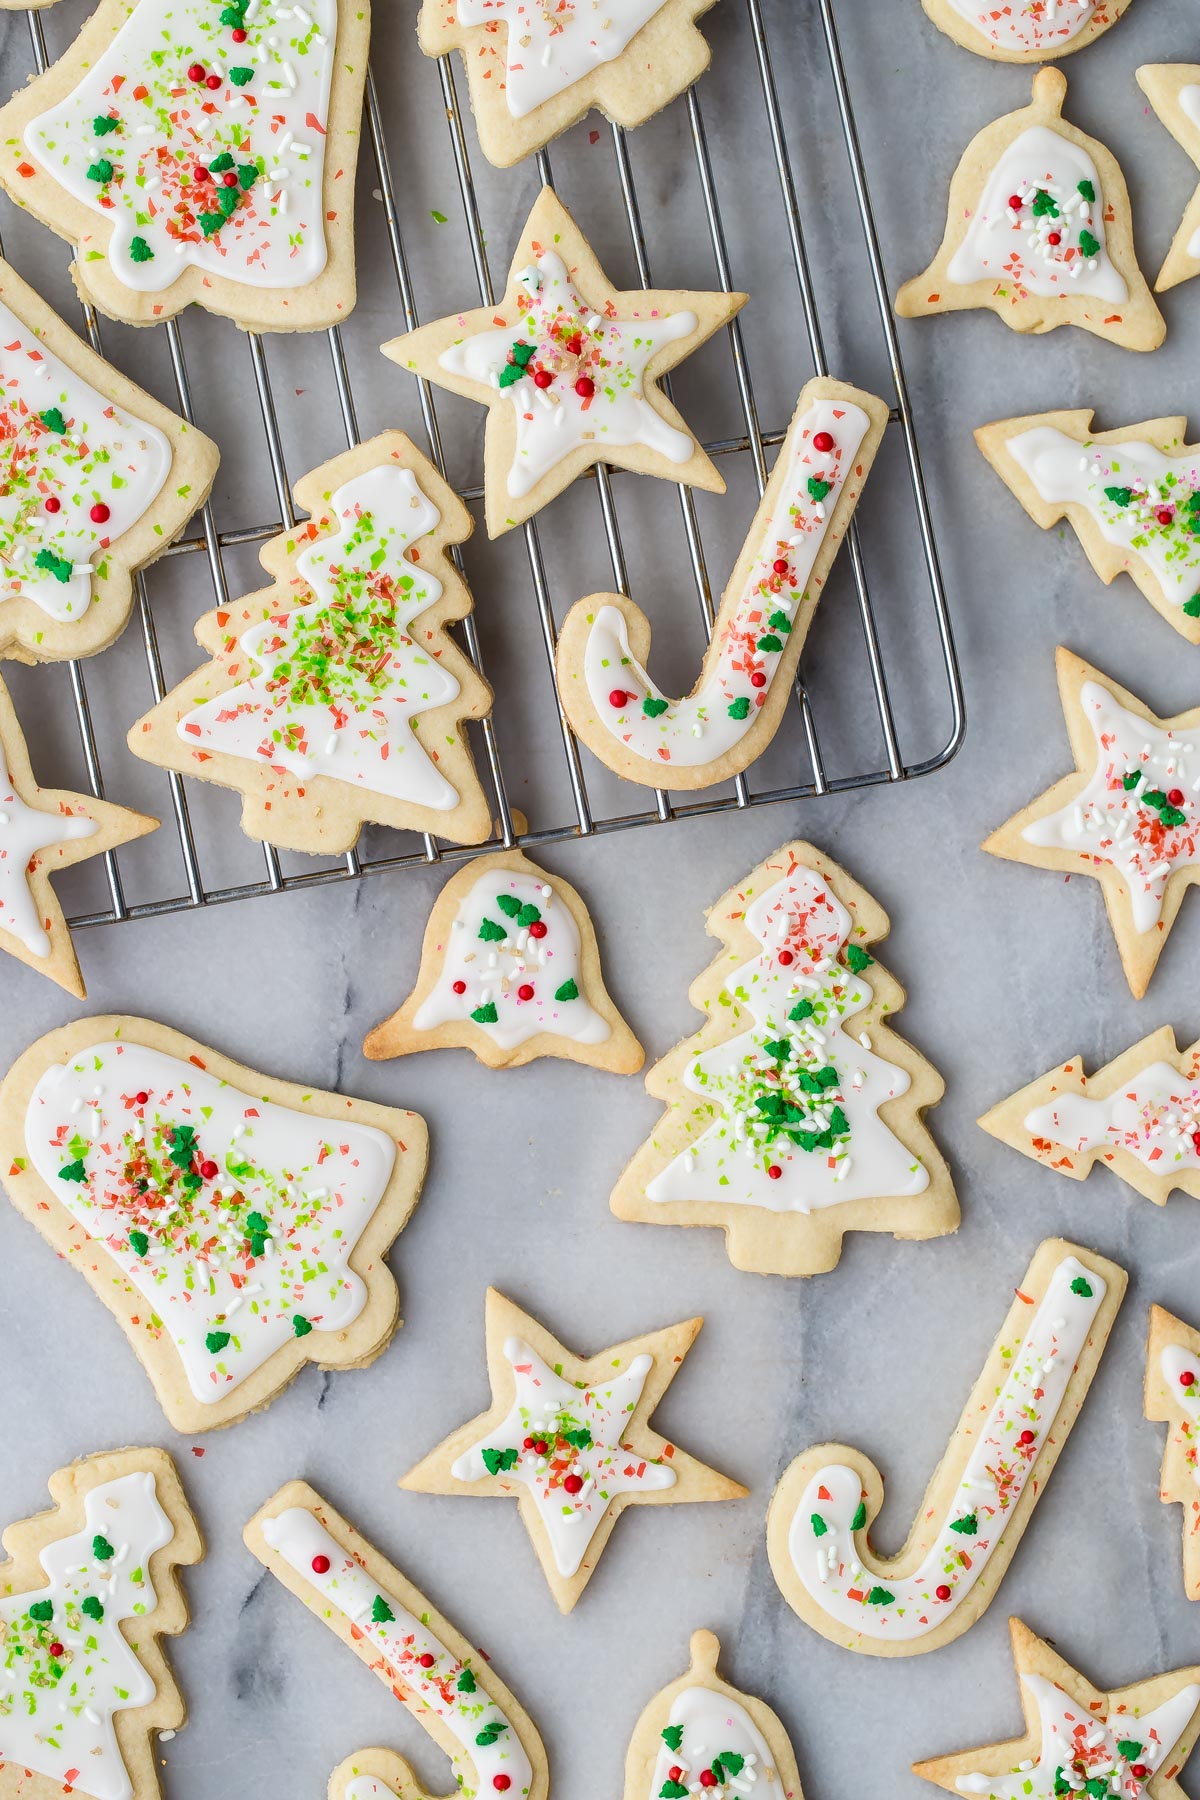 Sugar Cookies recipe and video from weelicious.com